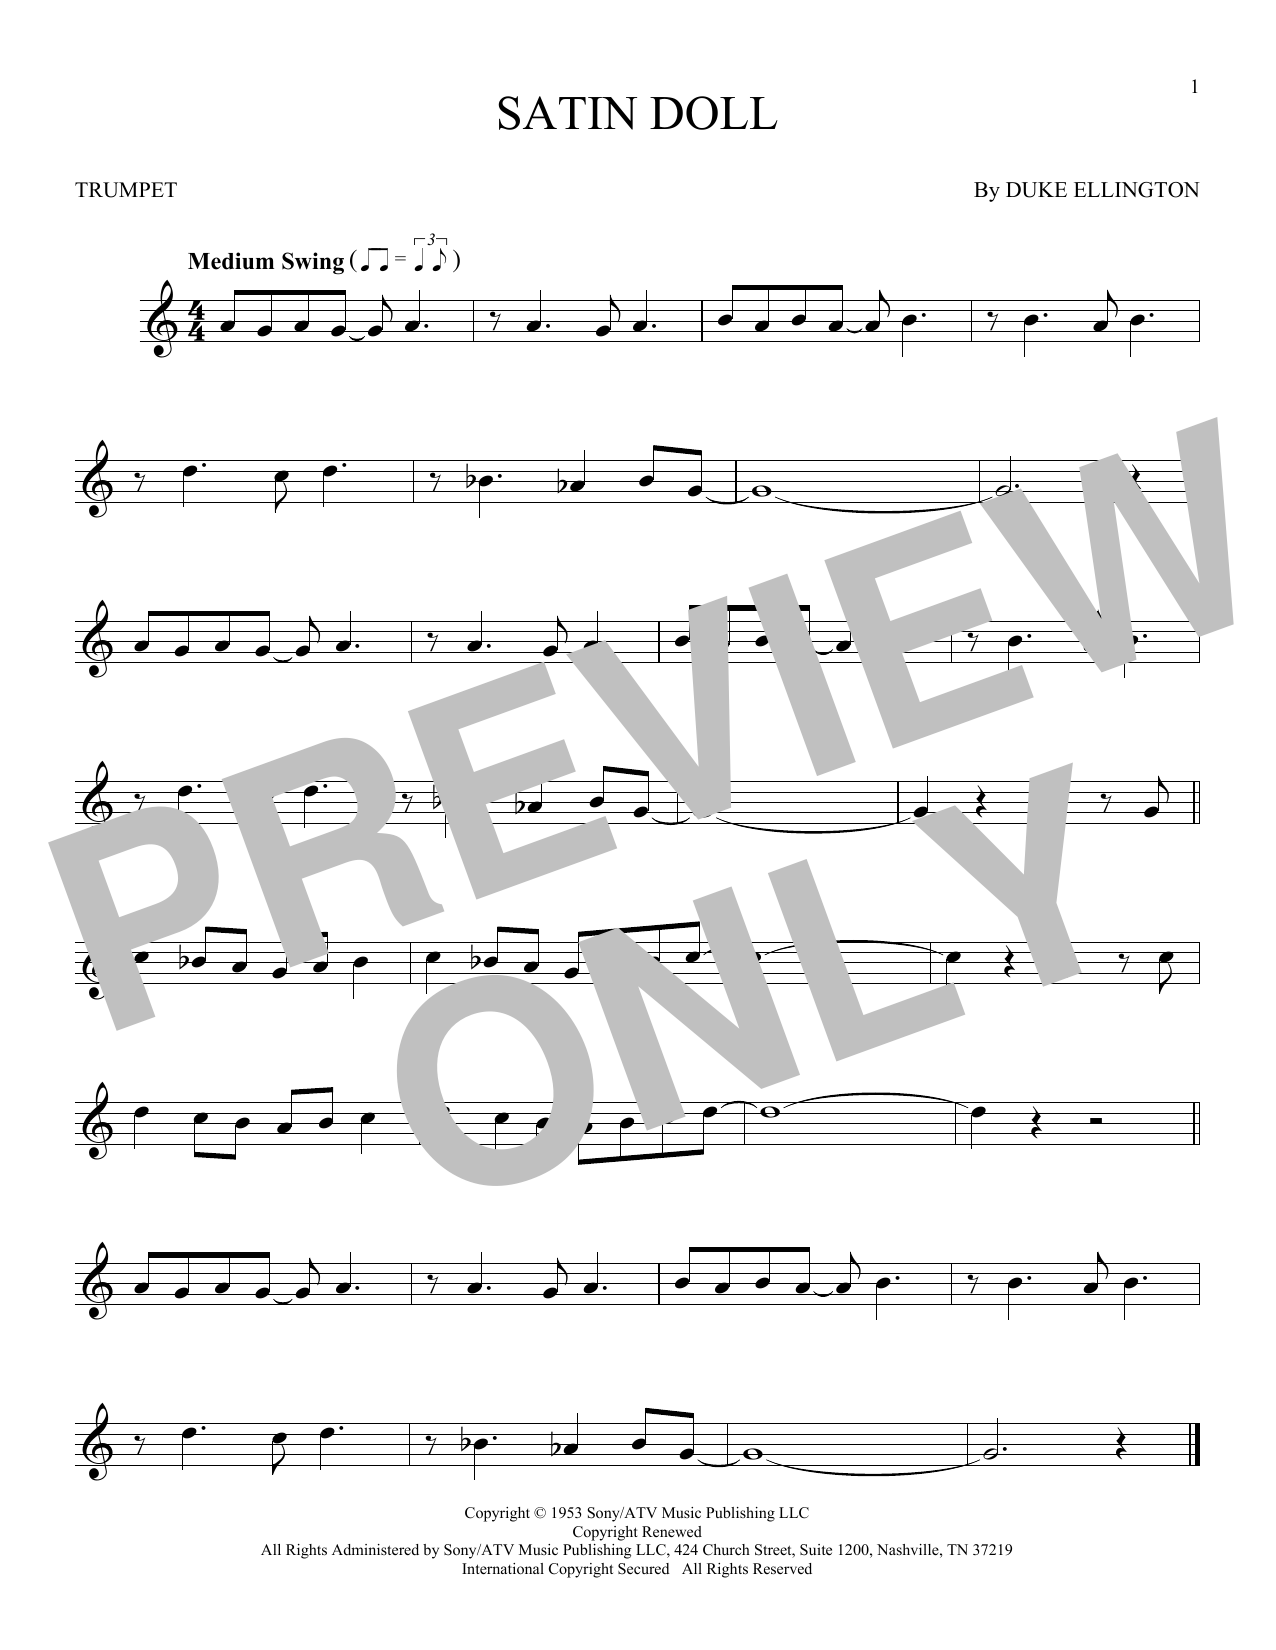 Satin Doll Sheet Music